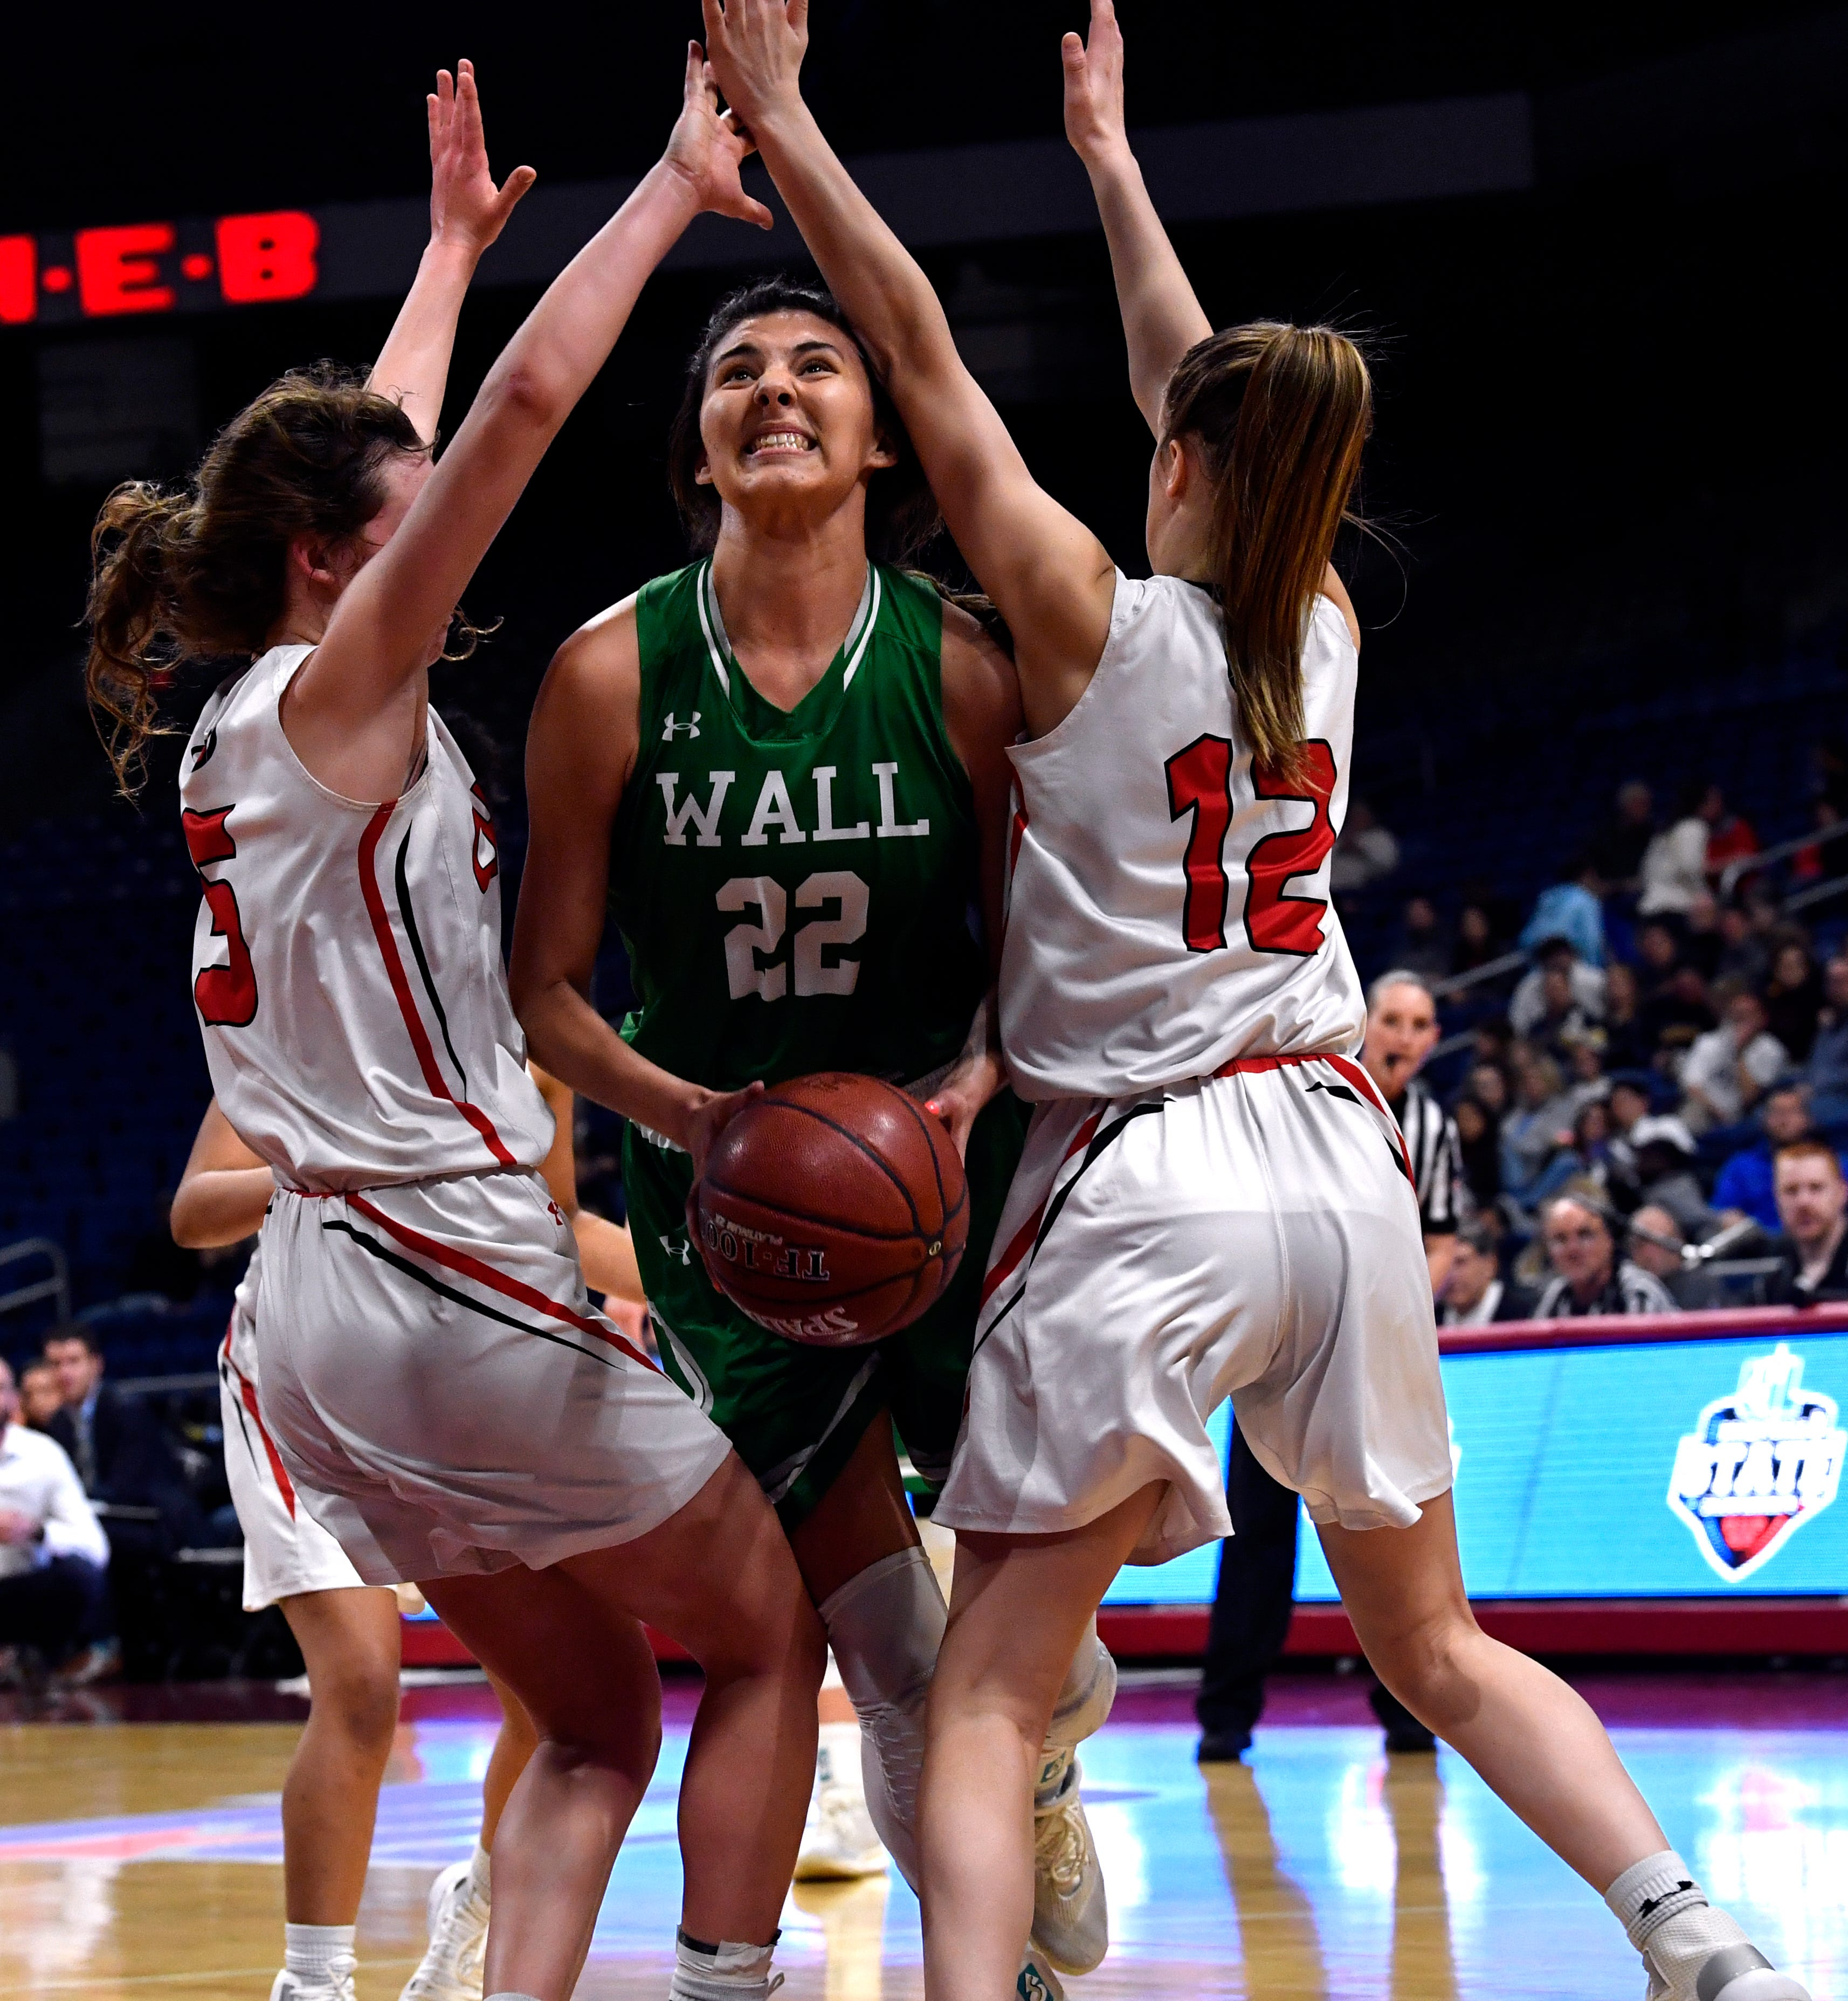 Wall forward Samantha Rocha is squeezed between Rebekah Crane (left) and Kinly Posey during the Lady Hawks' Thursday UIL Class 3A girls state basketball semifinal against Mount Pleasant Chapel Hill at the Alamodome in San Antonio Feb. 28, 2019.